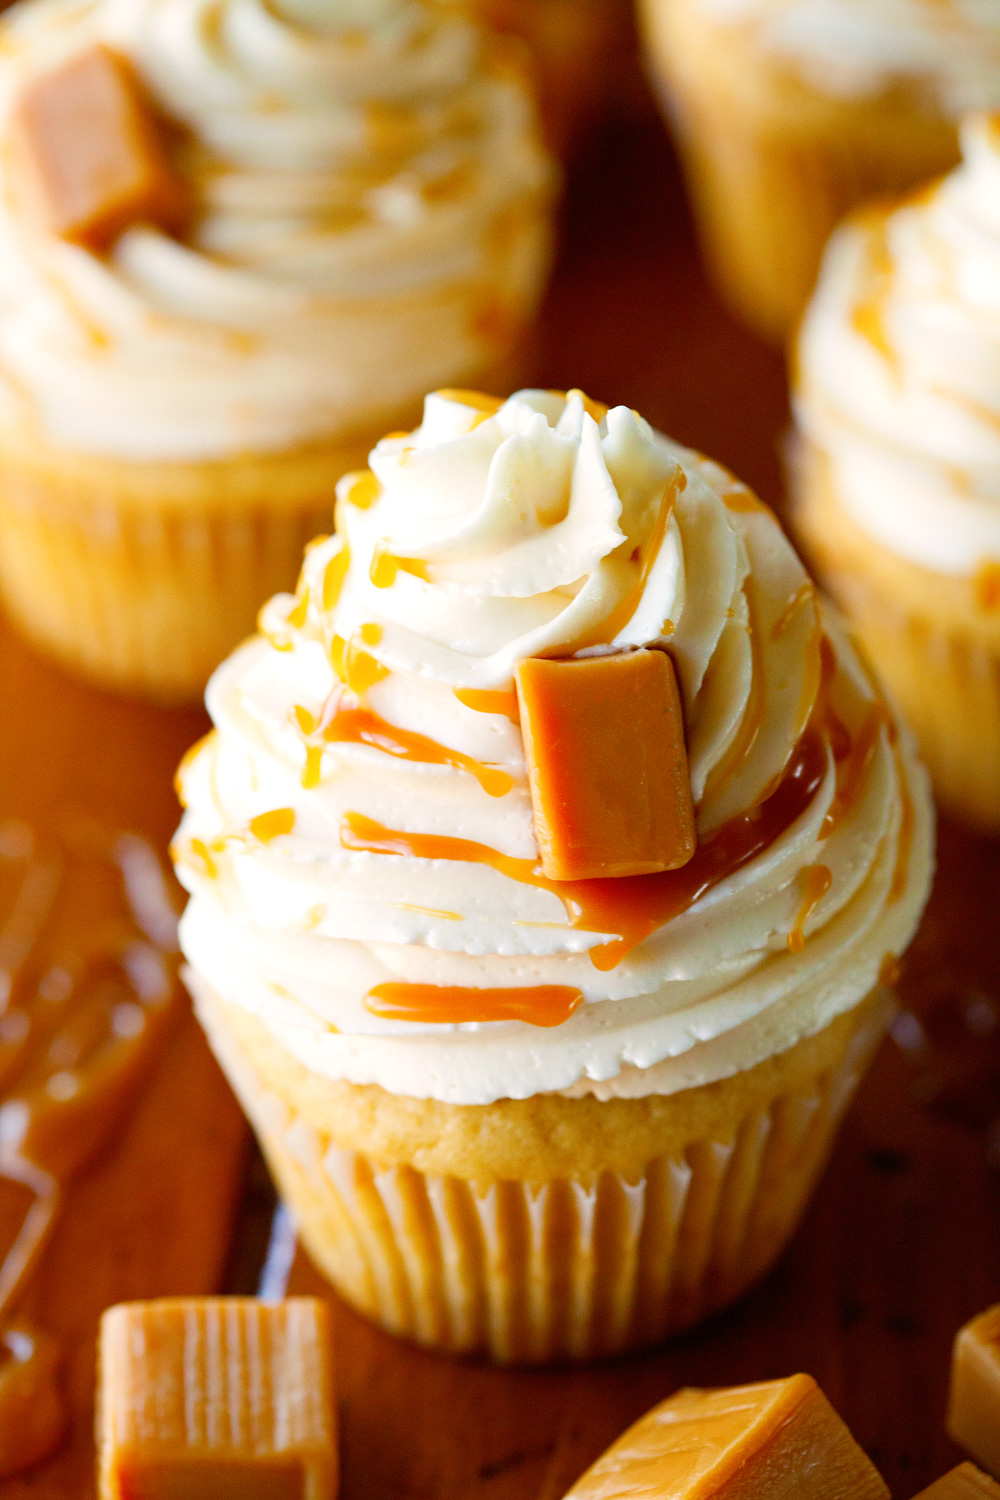 caramel cupcakes salted vanilla carmel cupcake recipe cake recipes moist filling cream chocolate buttercream filled cakes super swiss cup meringue